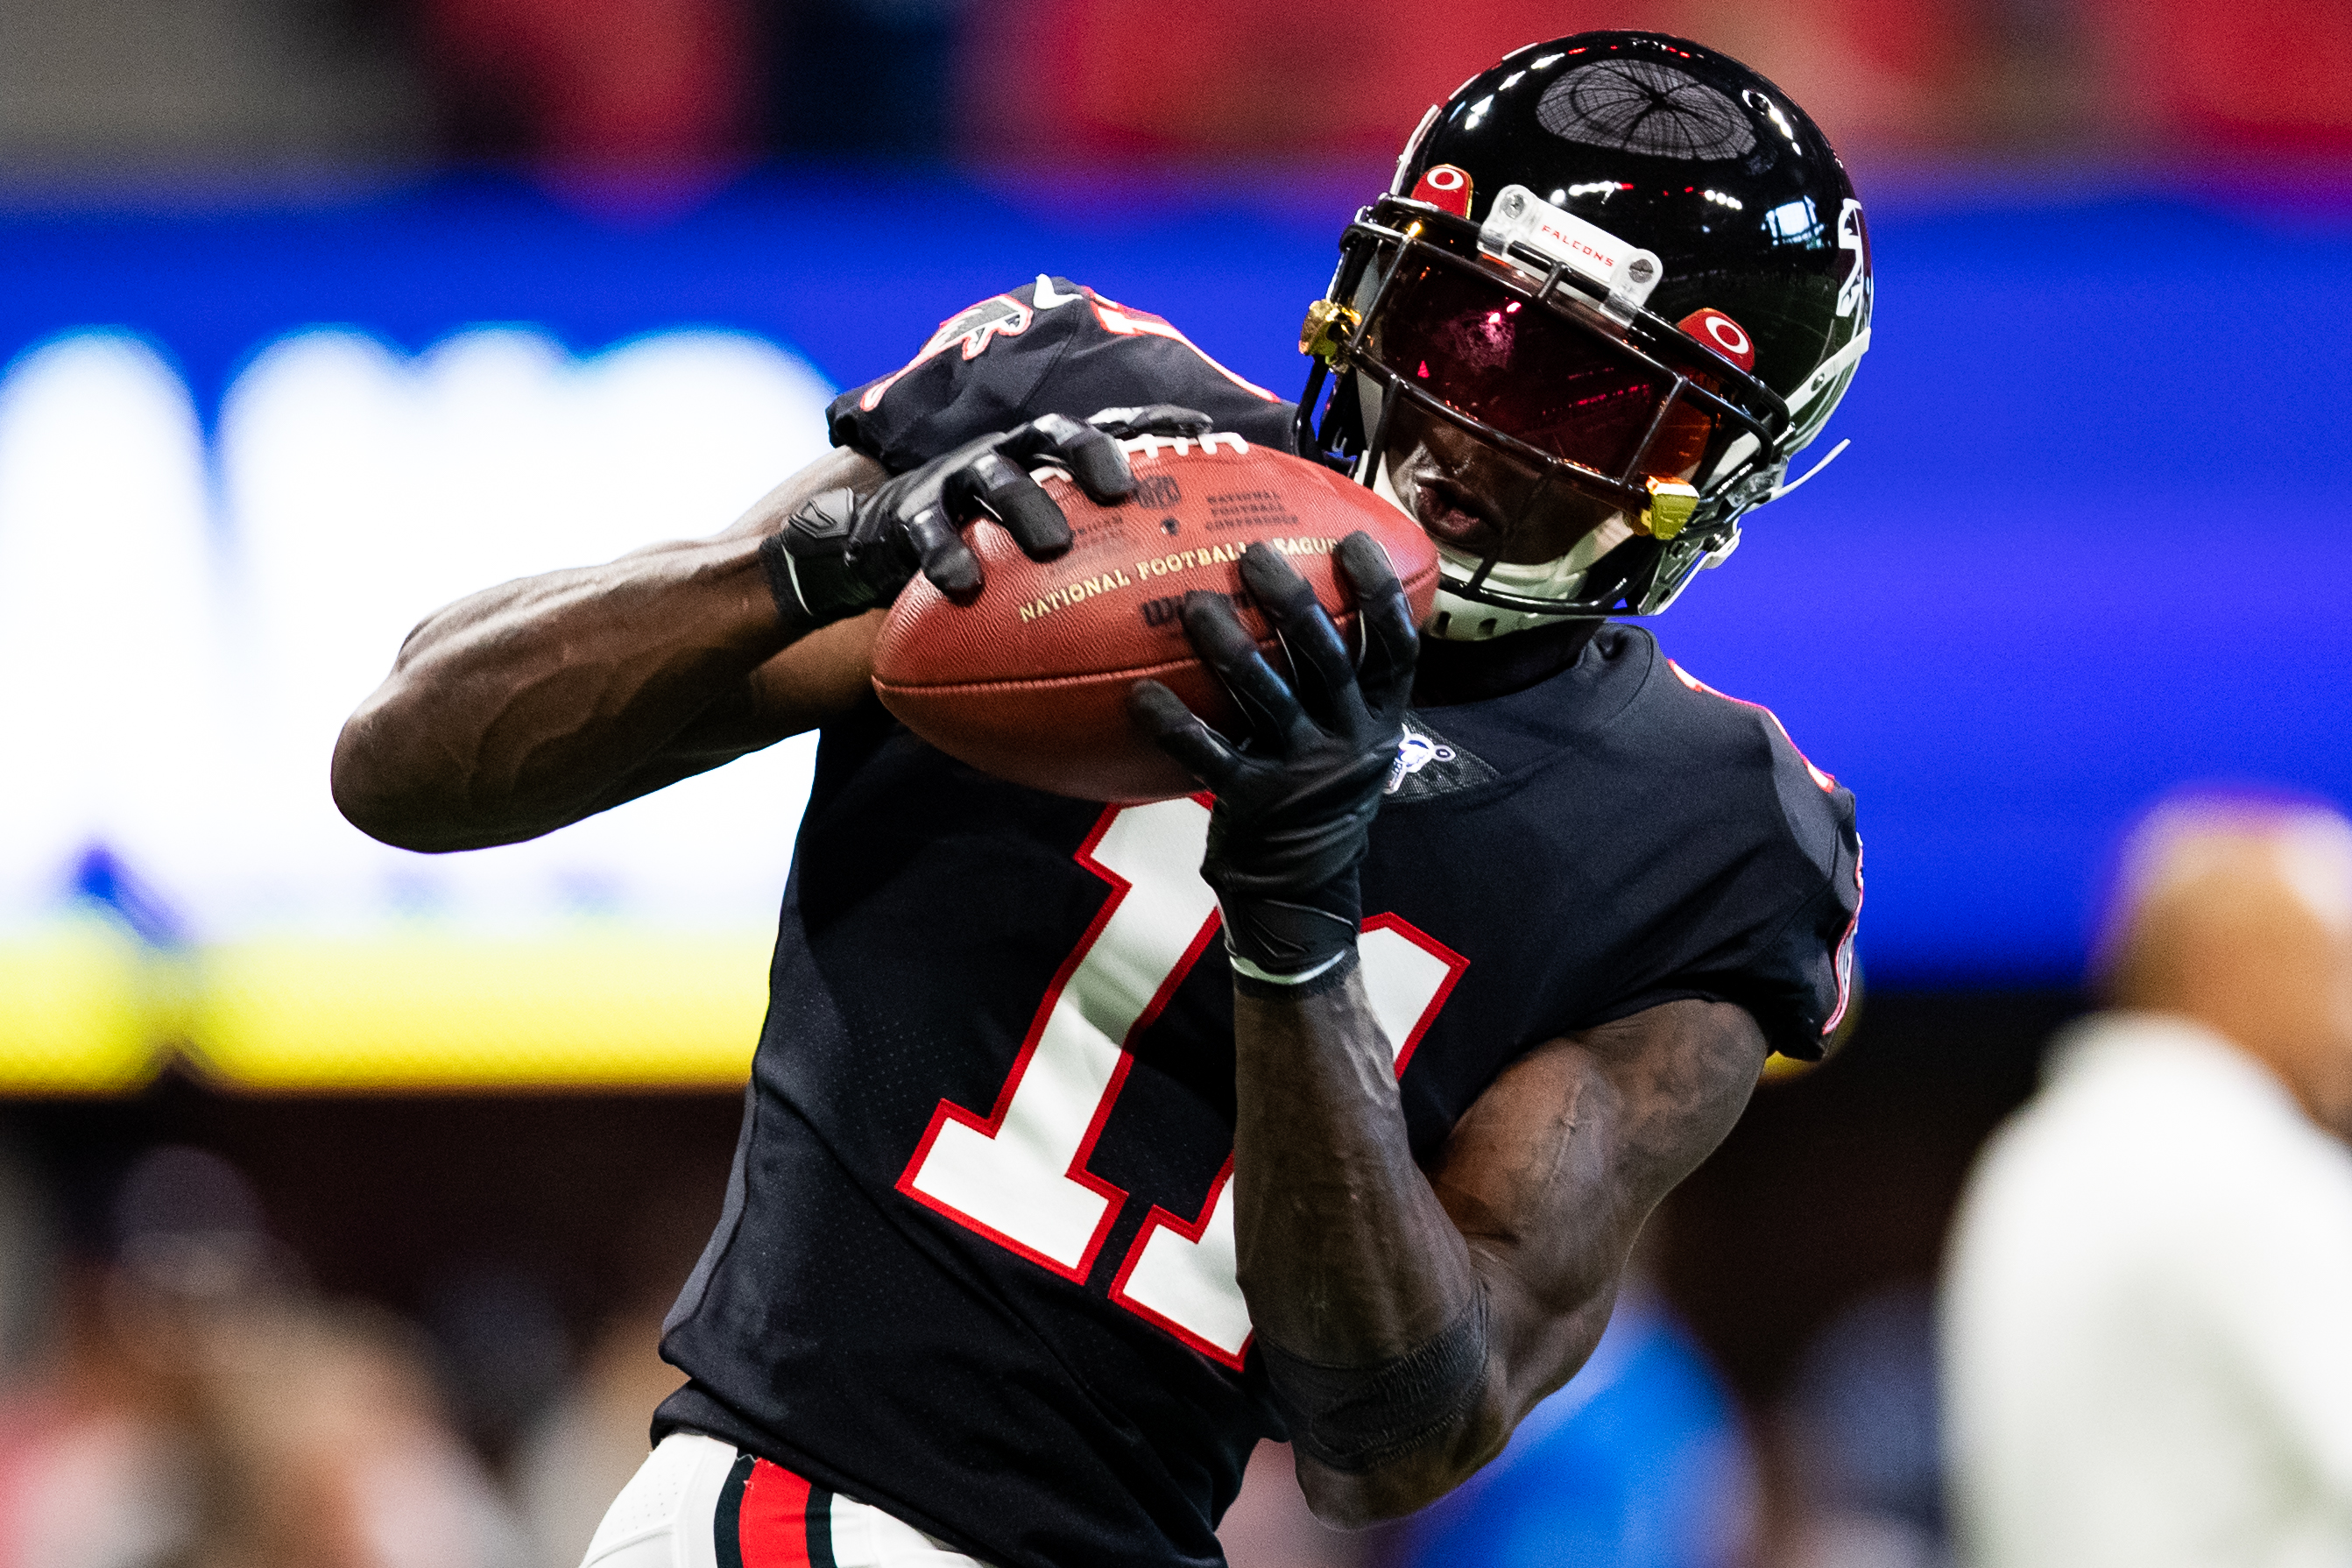 Julio Jones #11 of the Atlanta Falcons catches a pass during warm ups prior to the game against the Tennessee Titans at Mercedes-Benz Stadium on September 29, 2019 in Atlanta, Georgia.